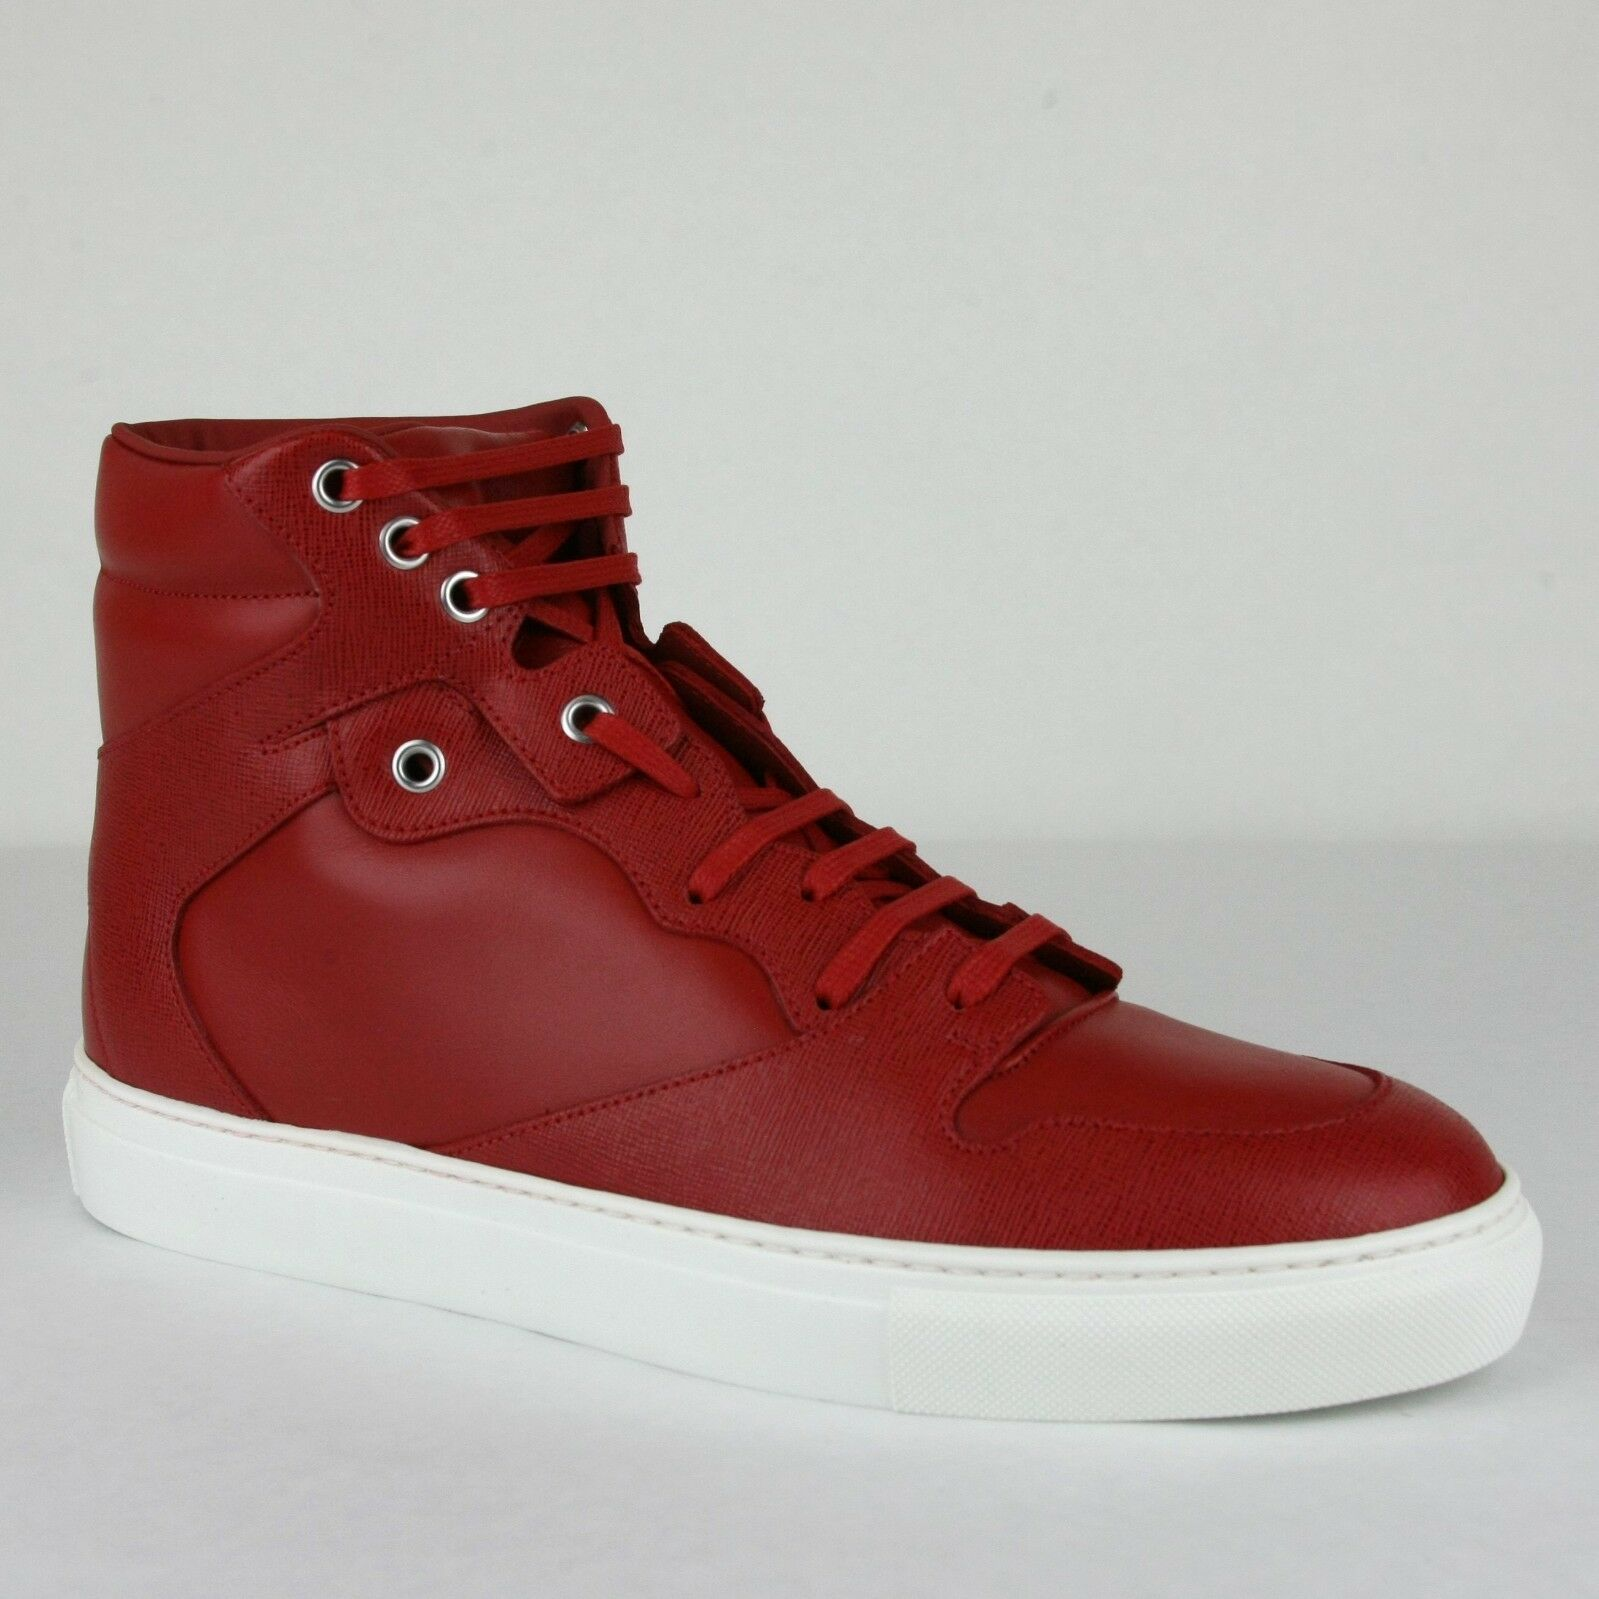 Balenciaga Men's Dark Red Leather Coated Canvas Hi Top Sneaker 391205 6479